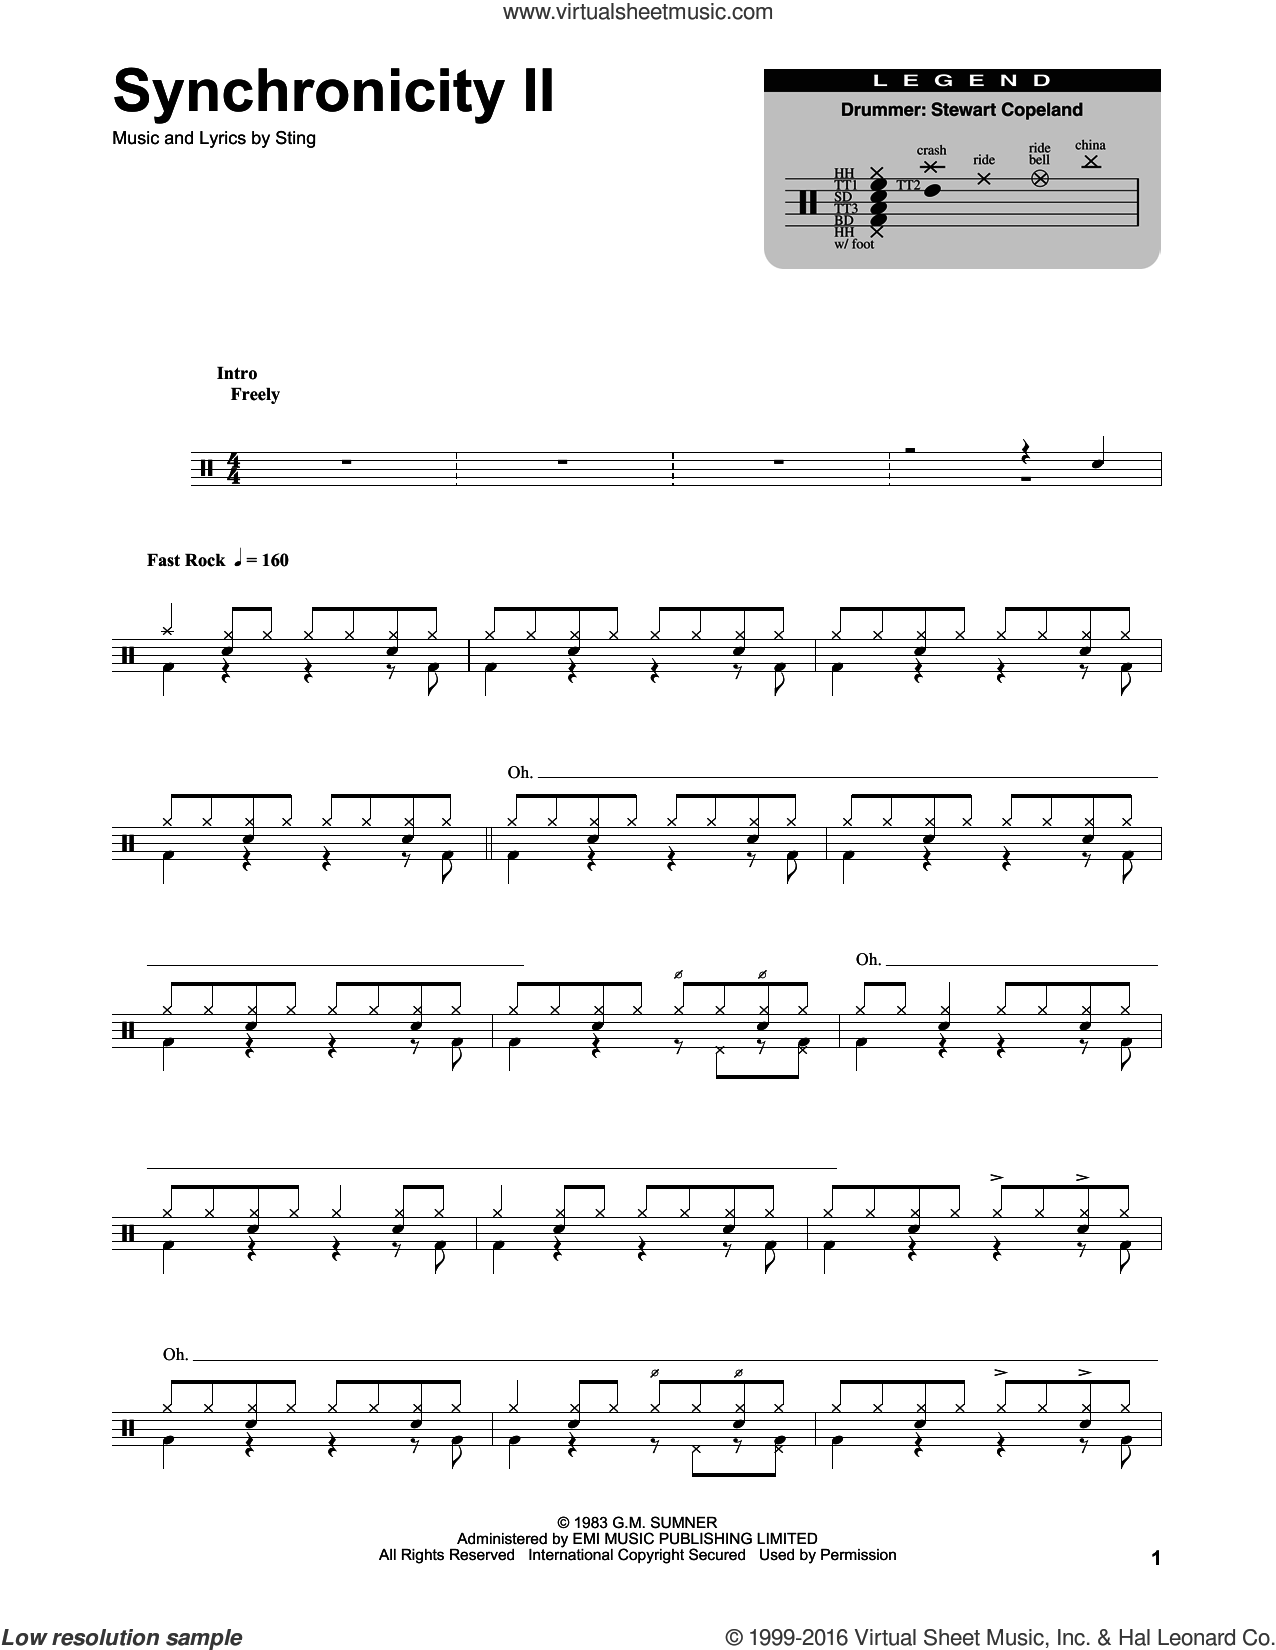 Synchronicity II sheet music for drums by The Police and Sting, intermediate skill level